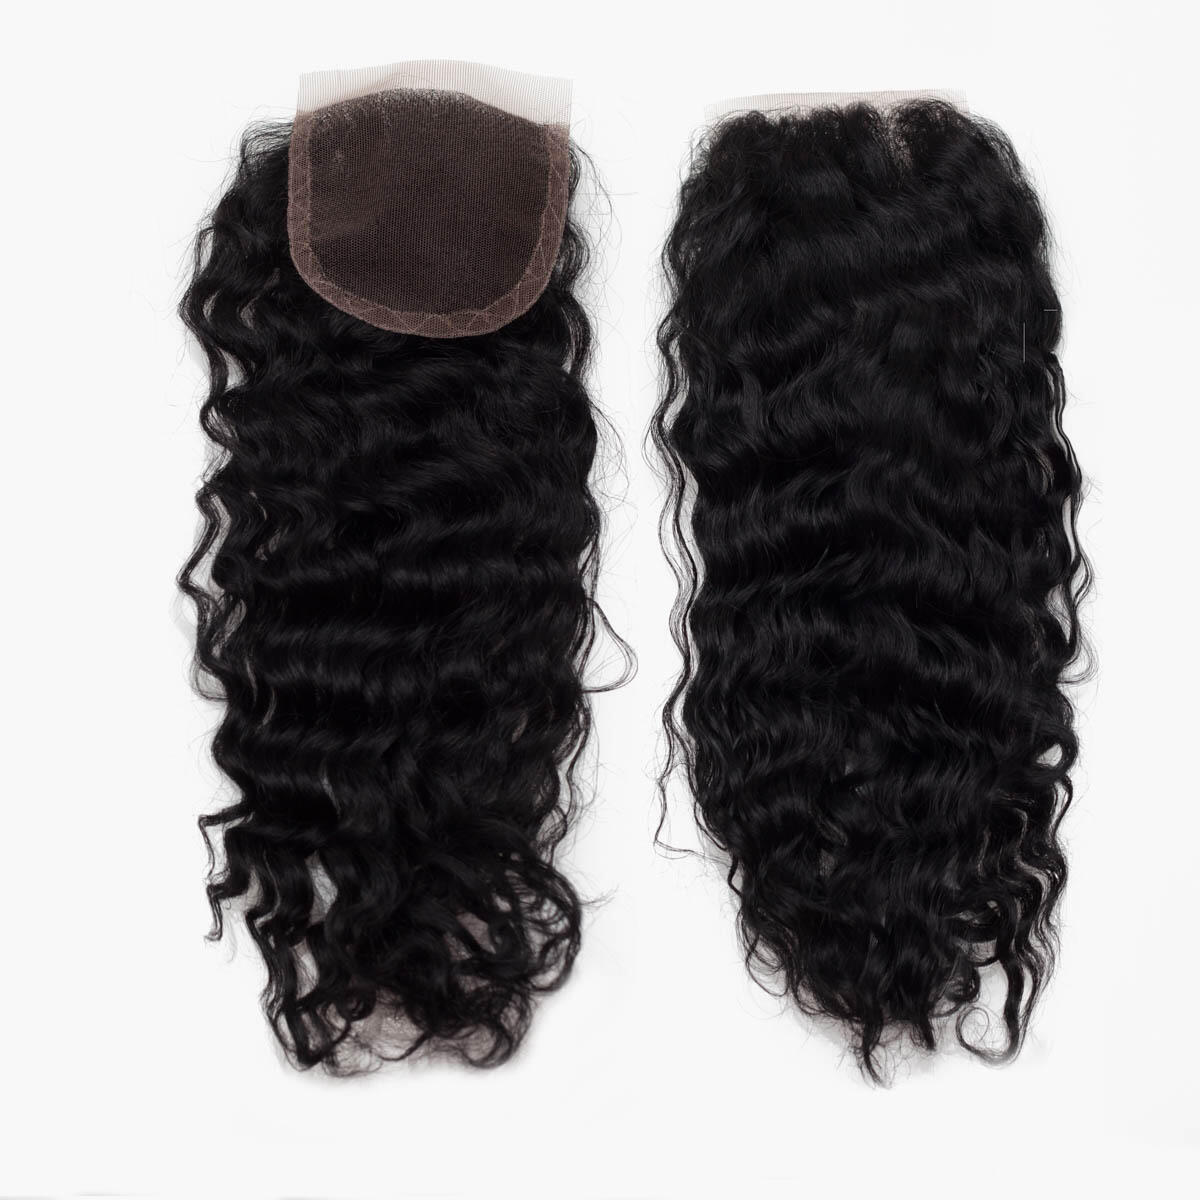 Lace Closure Curly Curls 1.0 Black 35 cm